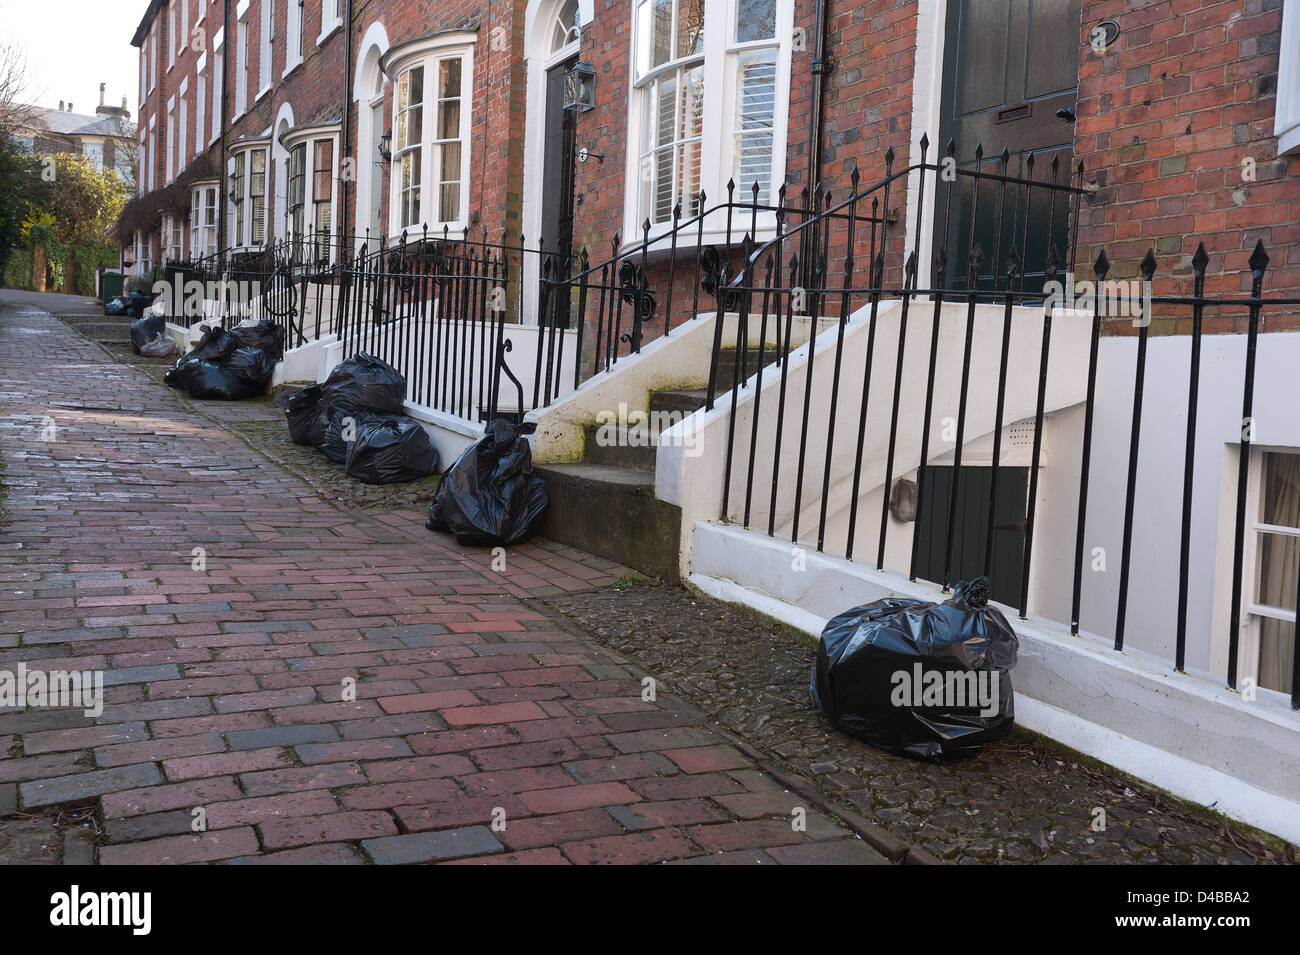 Paved street alley way with no vehicle access to well maintained Victorian houses making refuse collection difficult Stock Photo